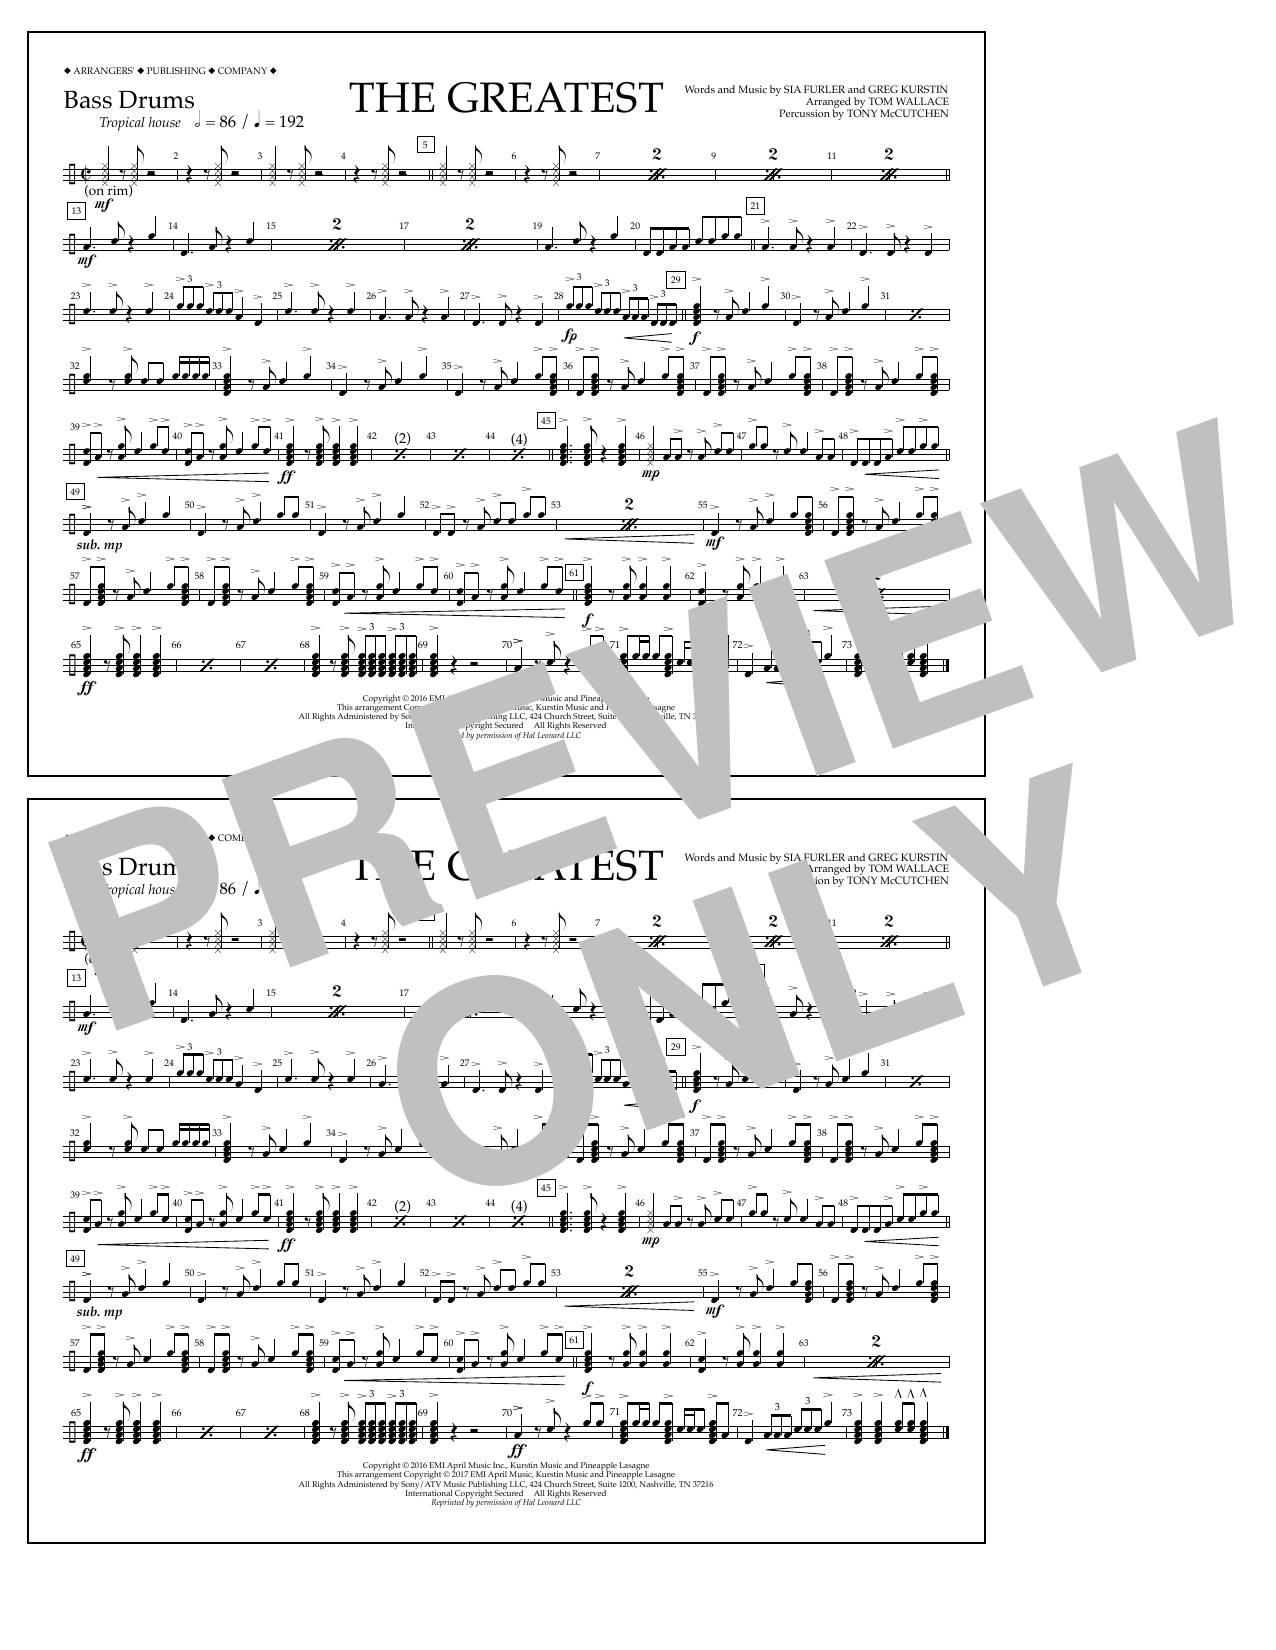 The Greatest - Bass Drums Sheet Music